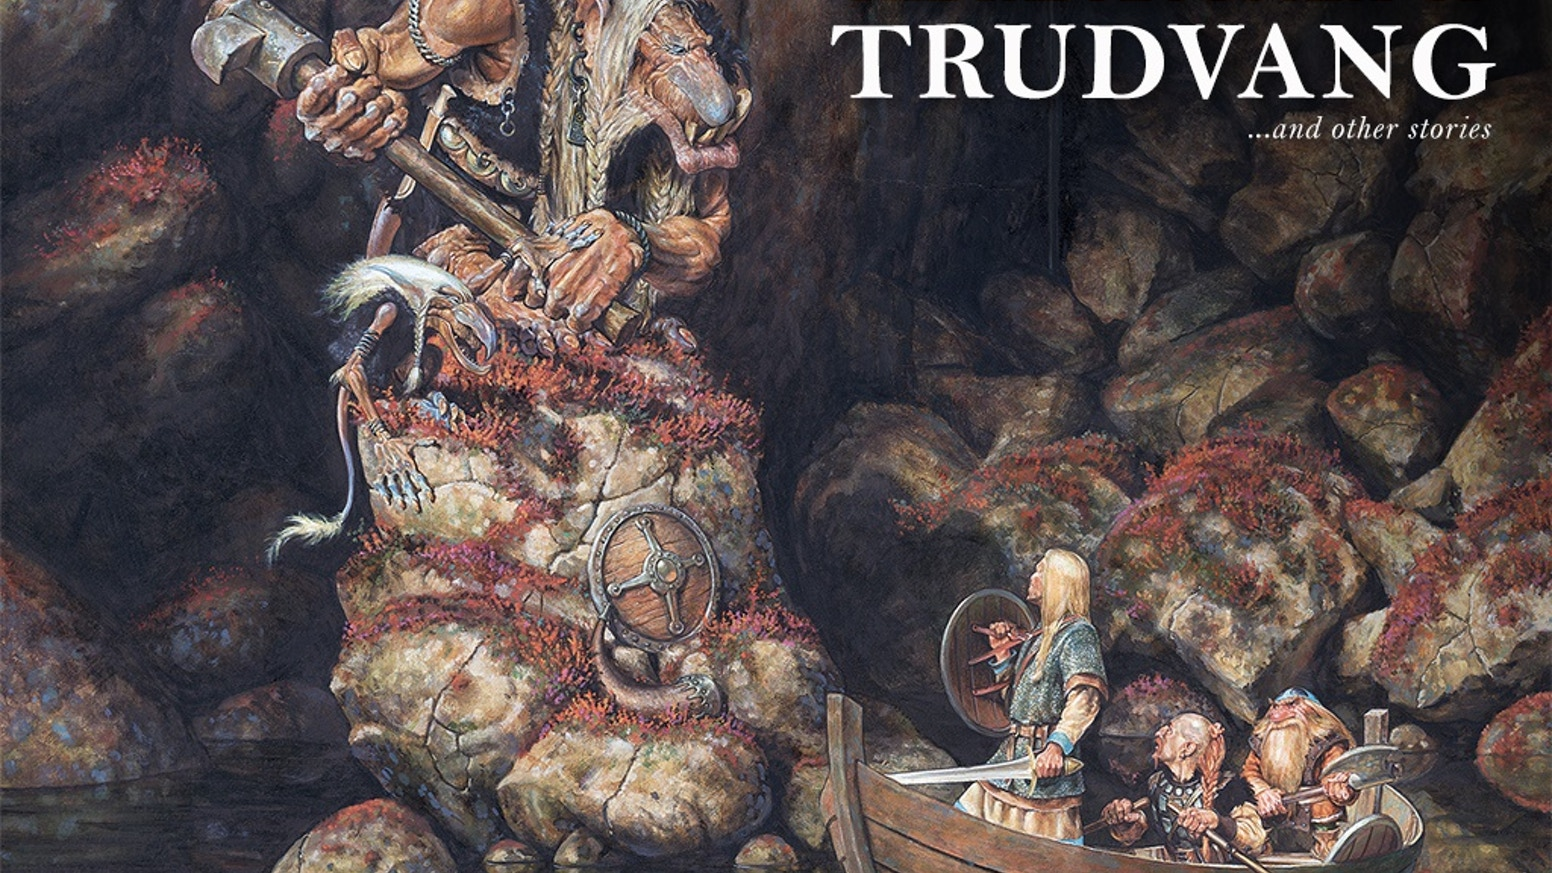 Unique chance to get the collected art of Trudvang with master artists such as Paul Bonner, Justin Sweet, Alvaro Tapia and more.